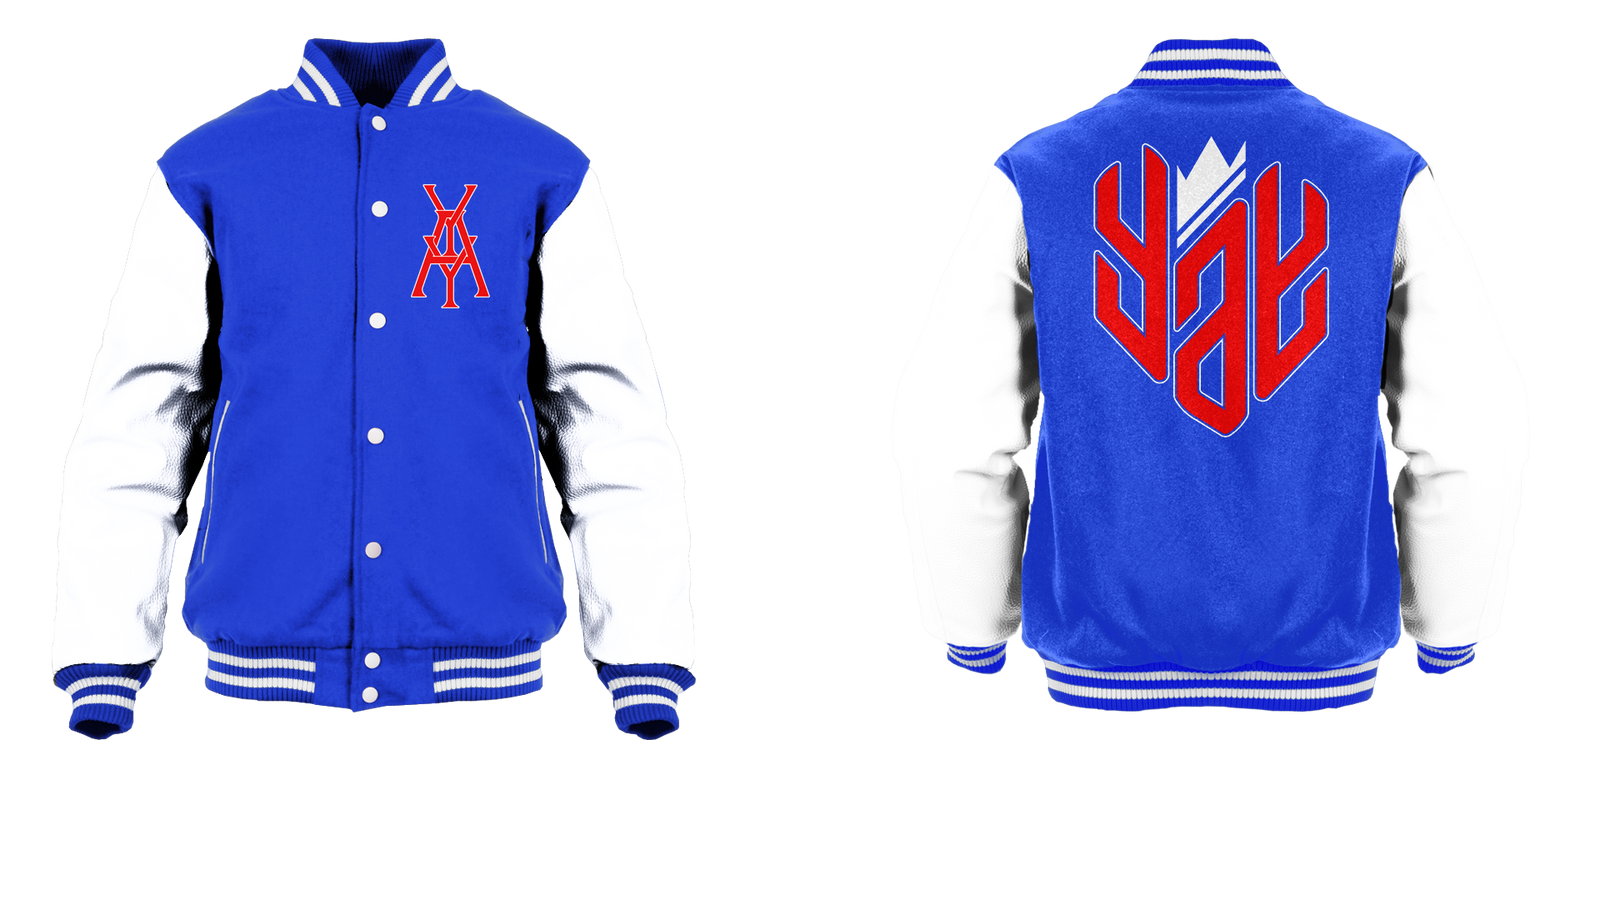 New Yay Monogram Logo Varsity Jacket